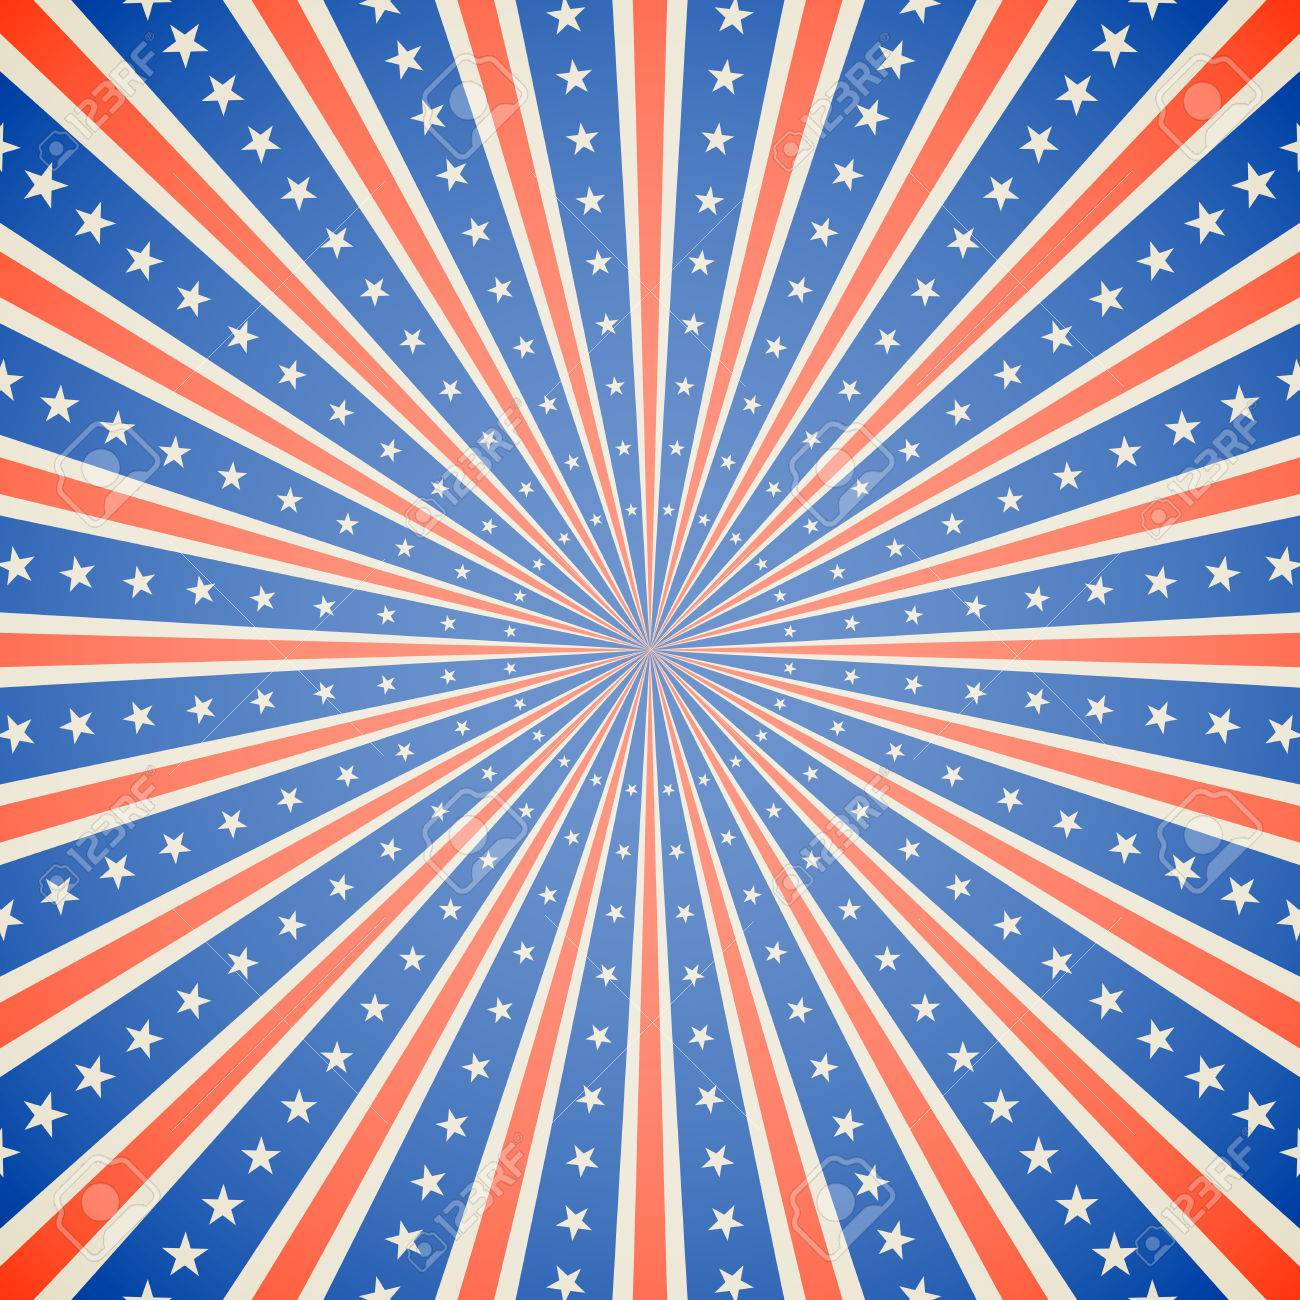 July 4 Independence Day white red and blue burst vector background. - 41733791